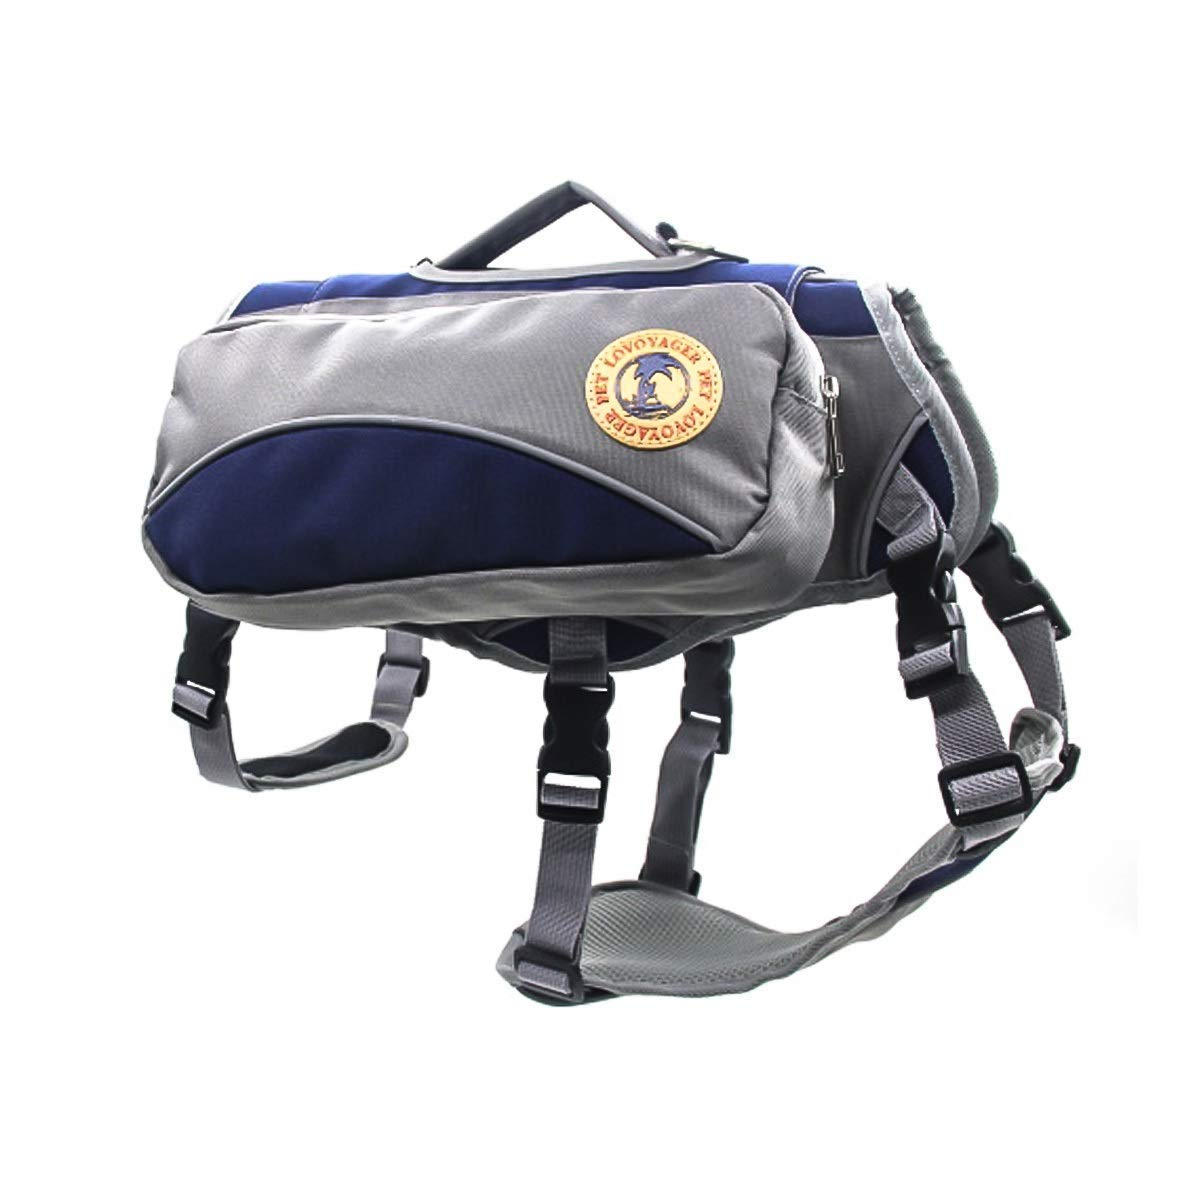 WXJHA Dog Self-Use Backpack, Out of The Portable Detachable 2-in-1 Dog Harness and Hiking Dog Backpack for Outdoor Use Gear Travel Camping,Blue,M by WXJHA